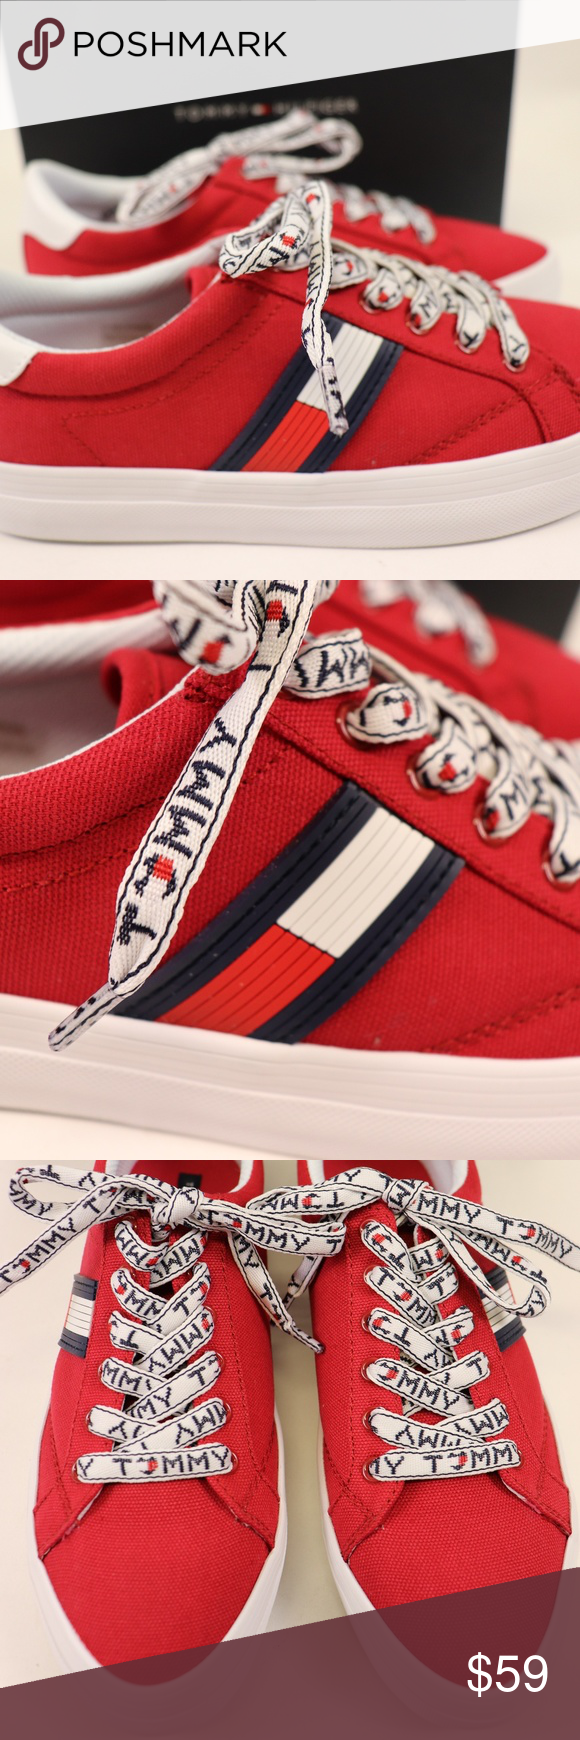 NEW TOMMY HILFIGER Red Canvas Low Top Sneaker NWT Tommy